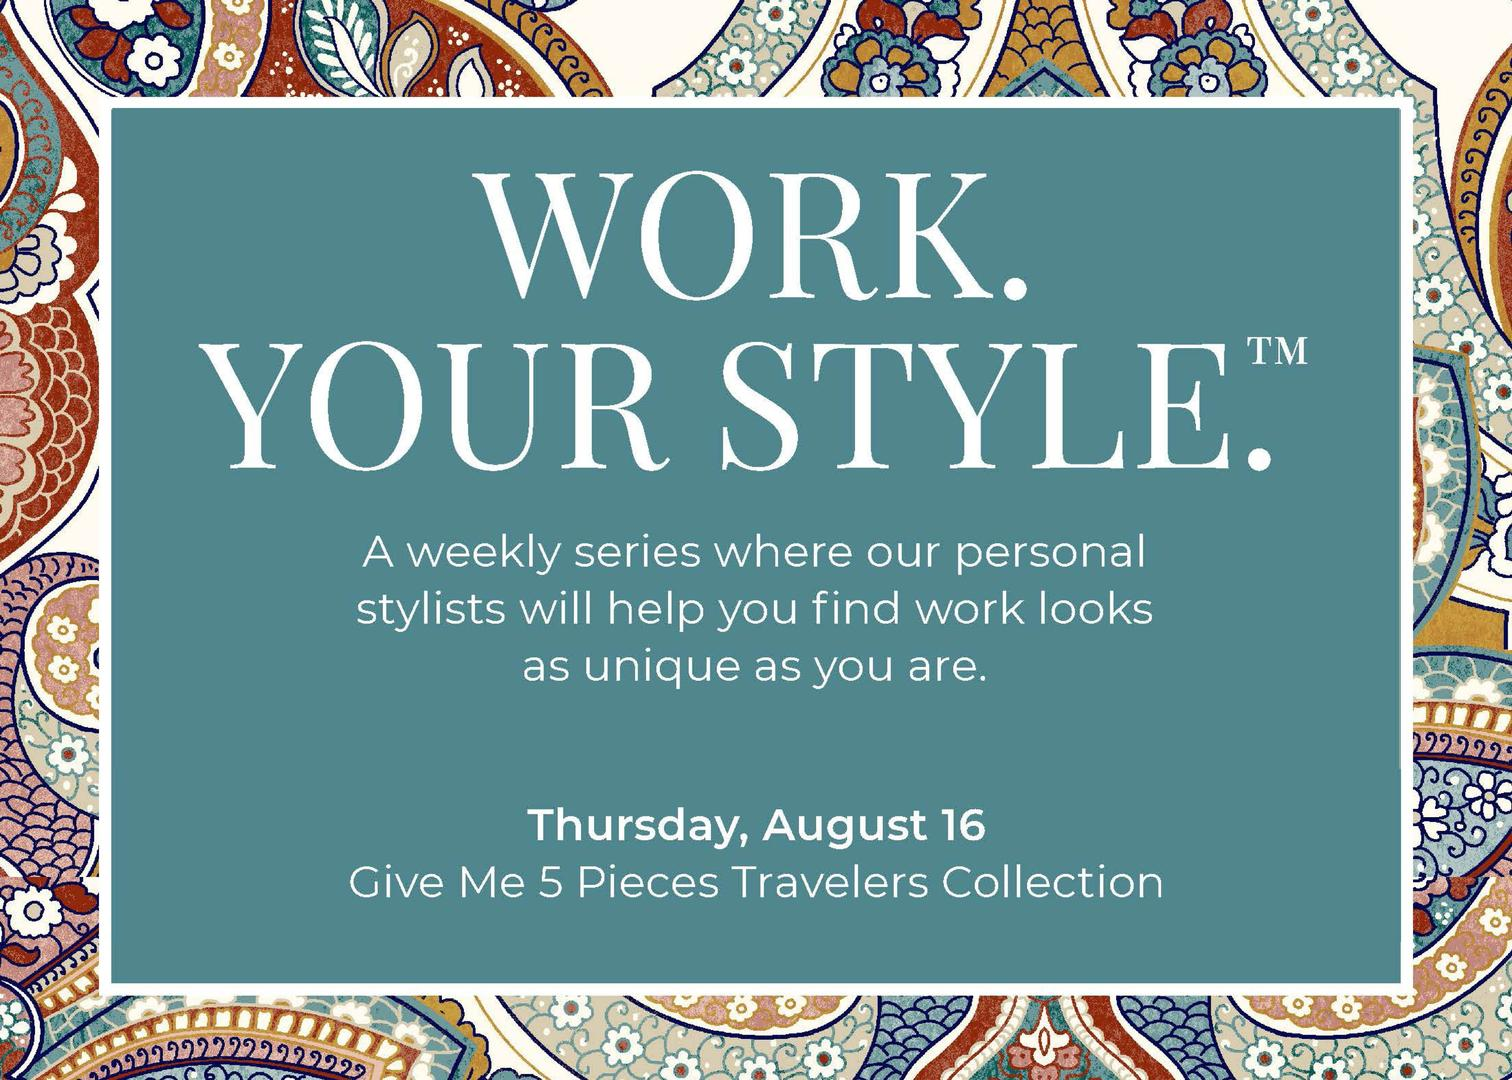 Mall of Georgia, Work You Style- Give Me 5 Pieces Travelers Collection  Event Image: 3333 Buford Drive, Ste VC01A, Buford, GA 30519, US